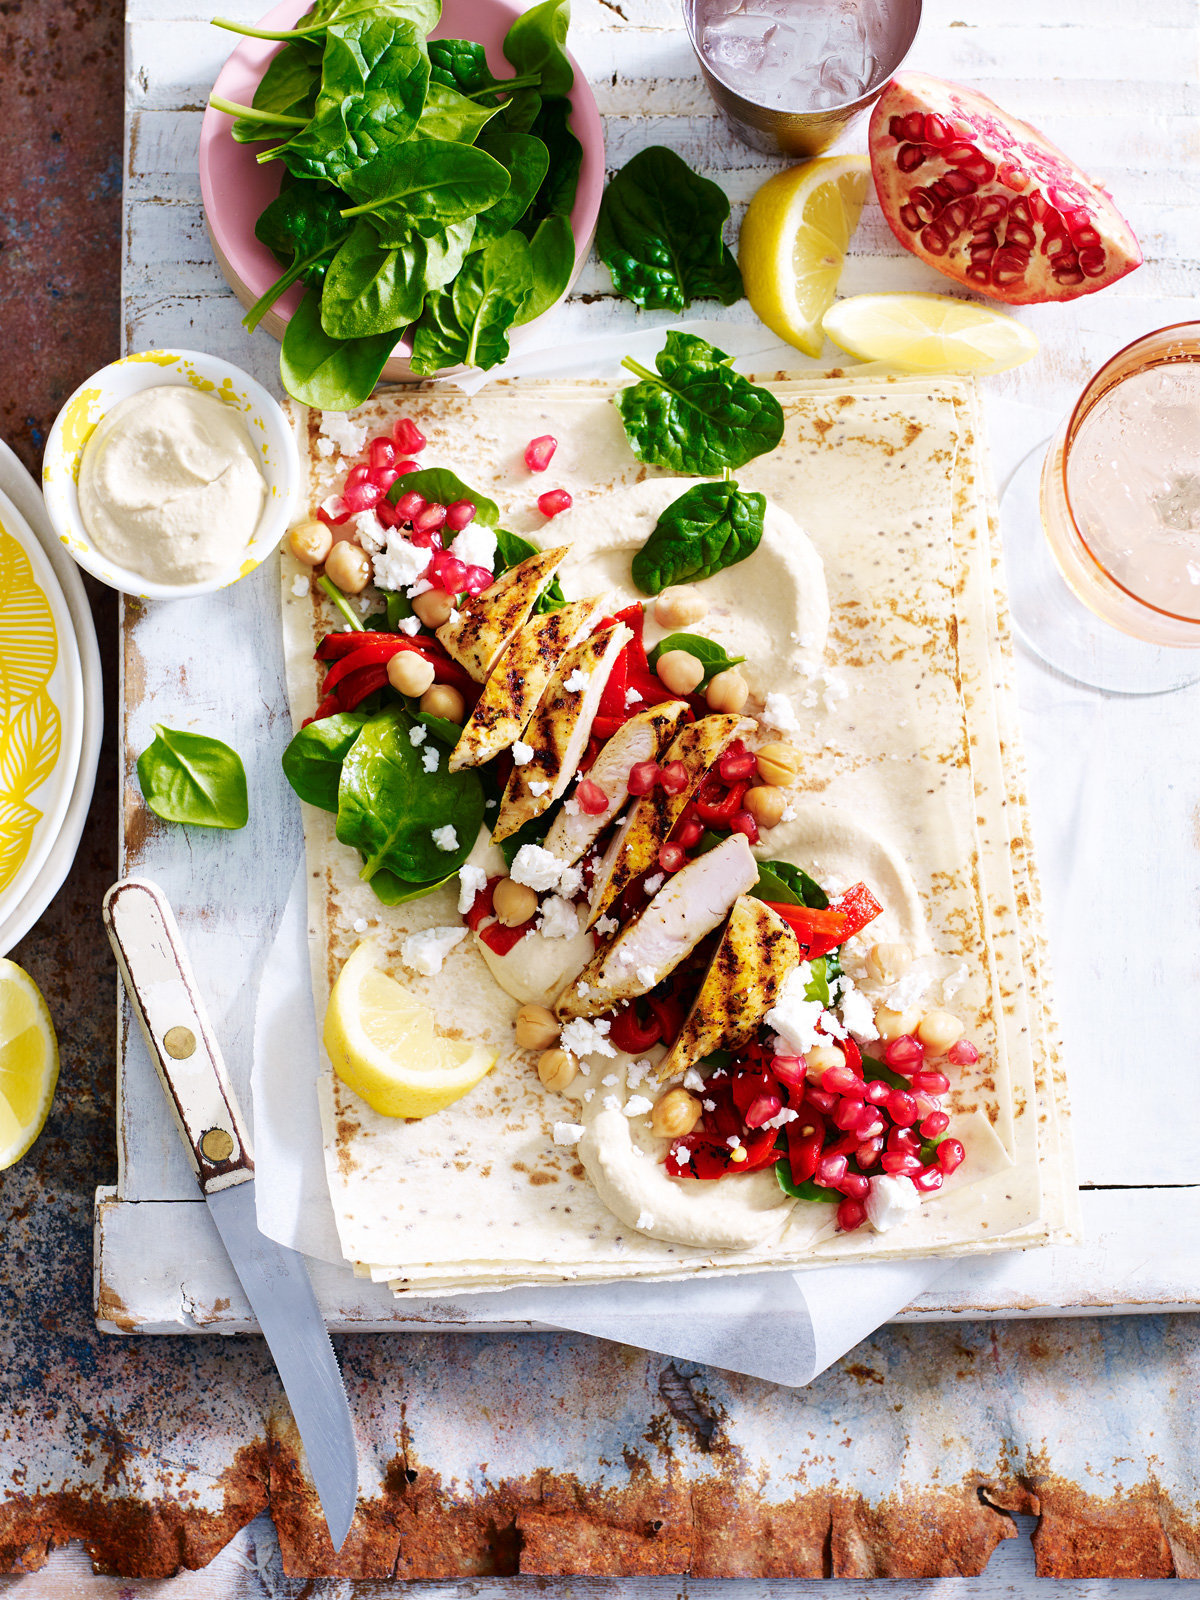 Andy-Lewis-food-photographer-©-photography_Lilydale_Spring_Chia-Wraps-With-Moroccan-Chicken.jpg